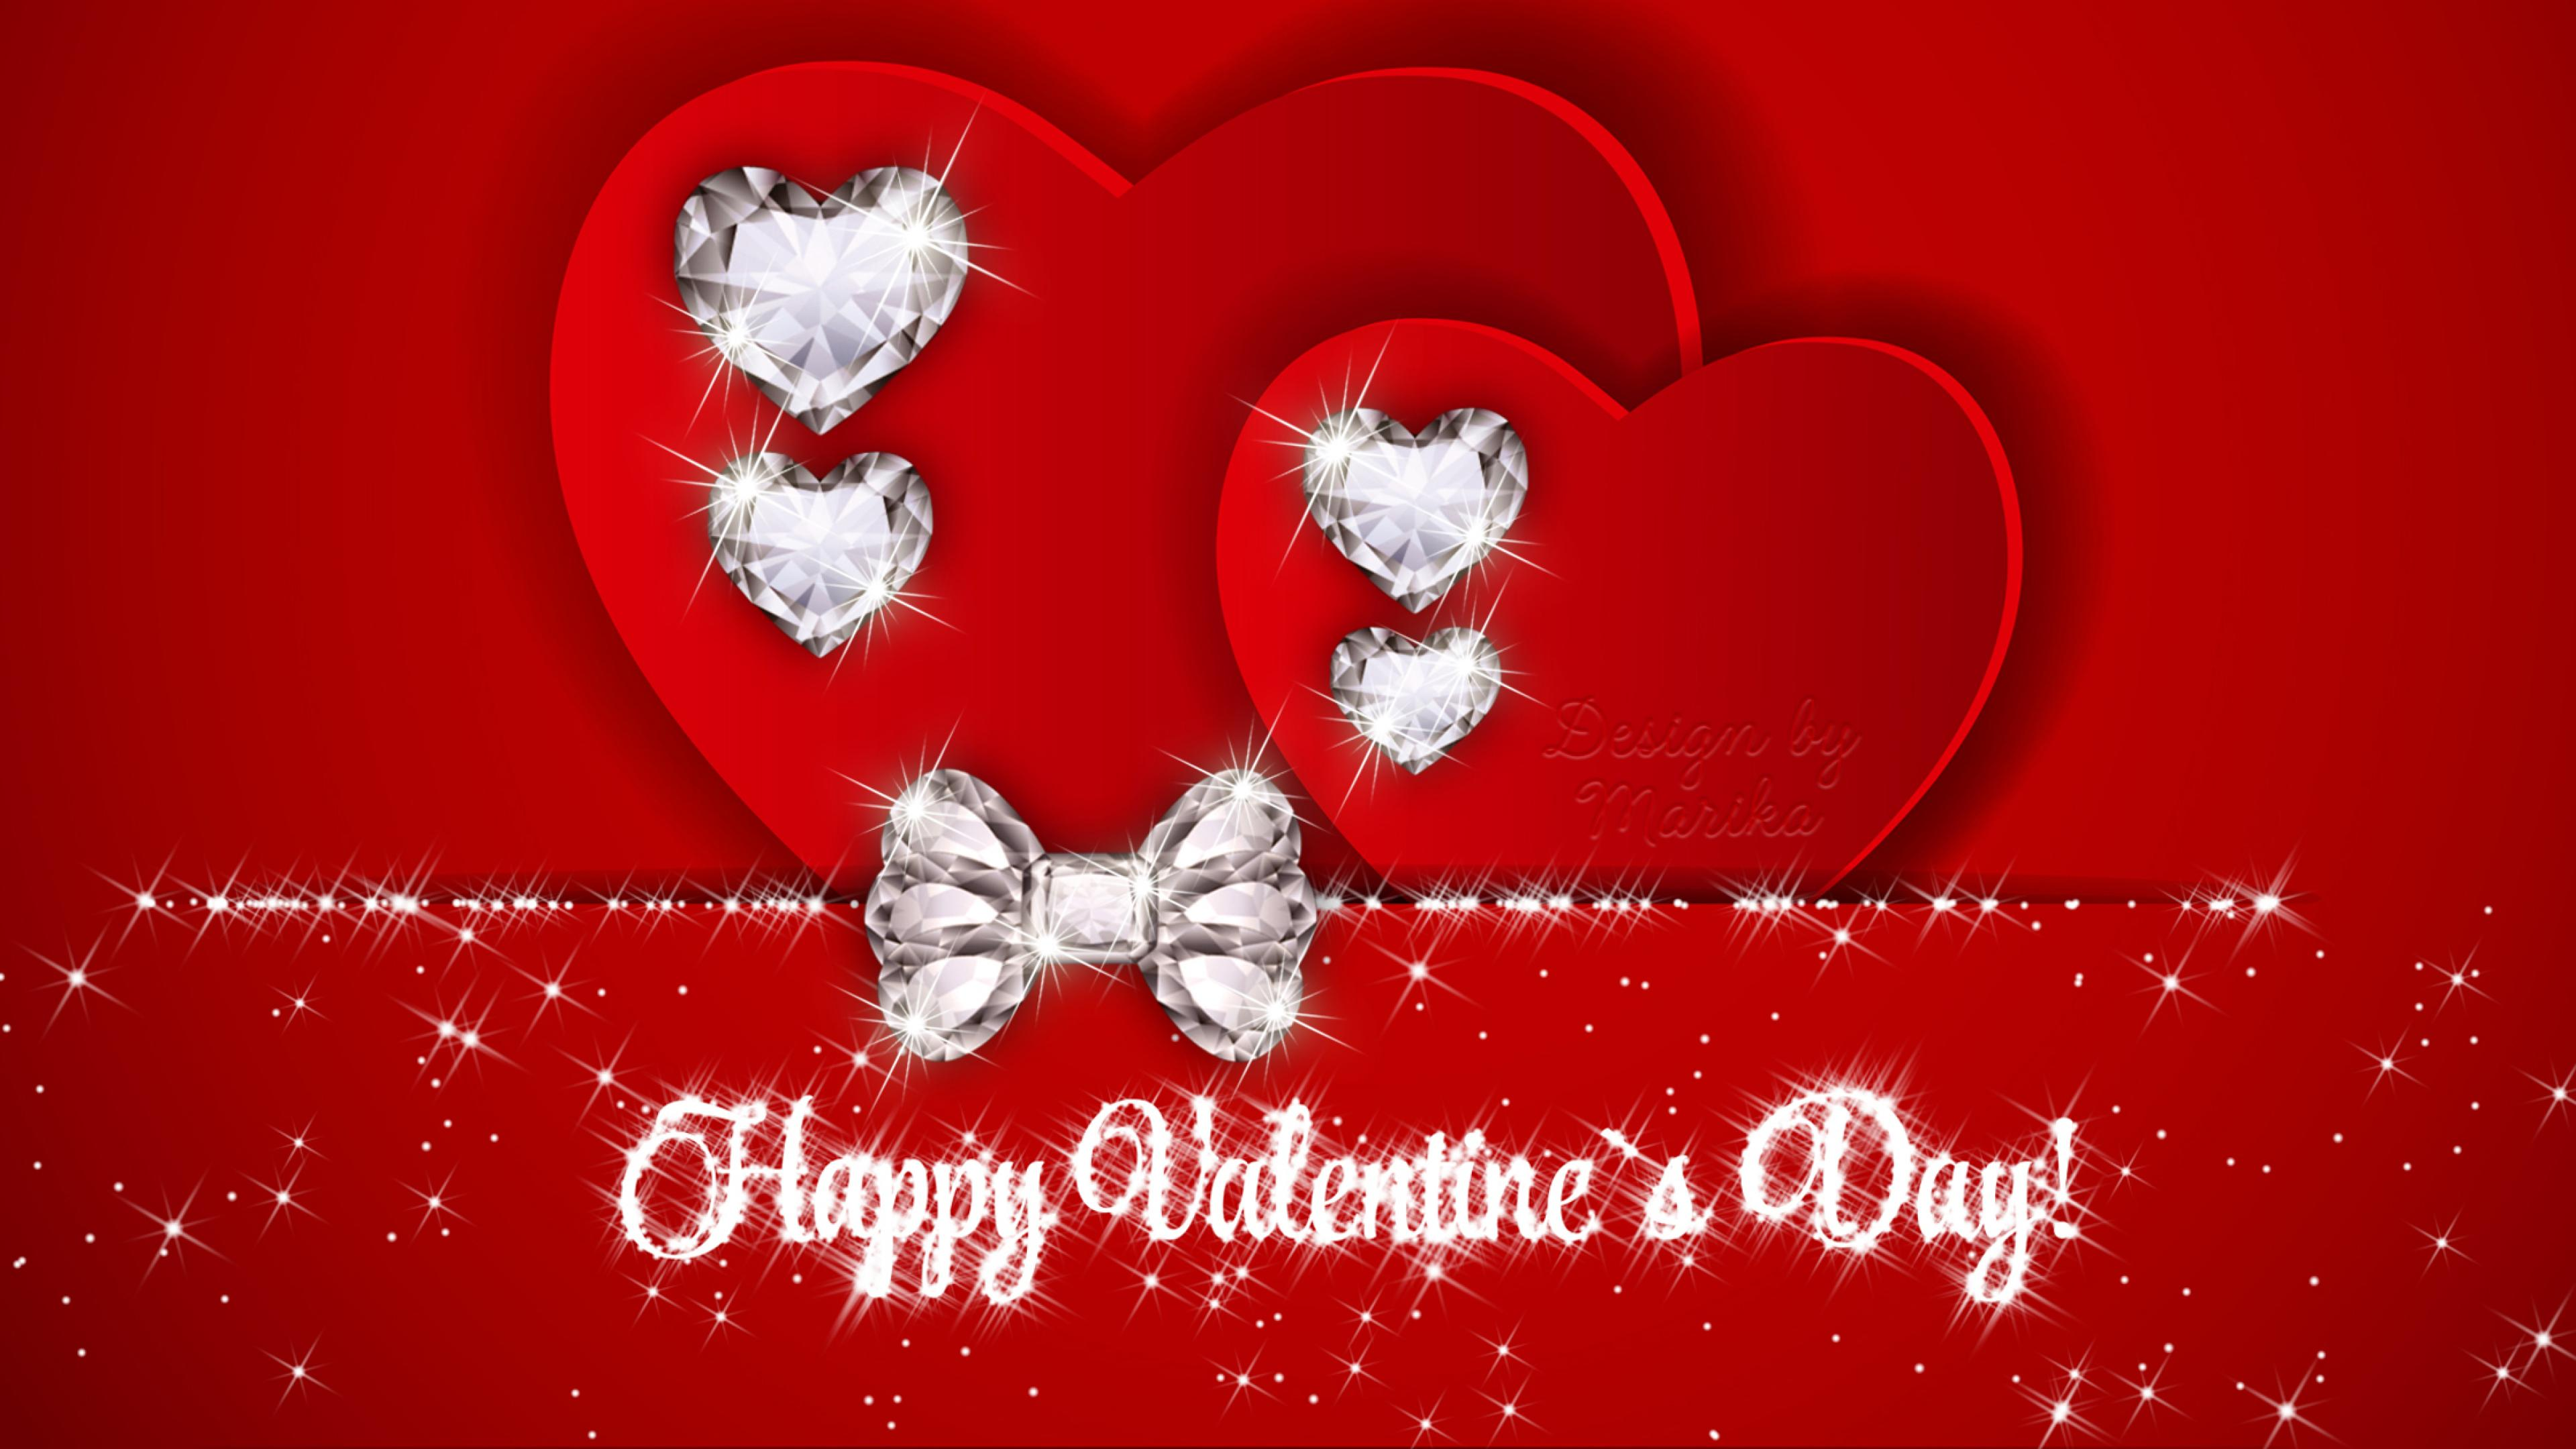 beautiful wallpapers,red,heart,valentine's day,text,love